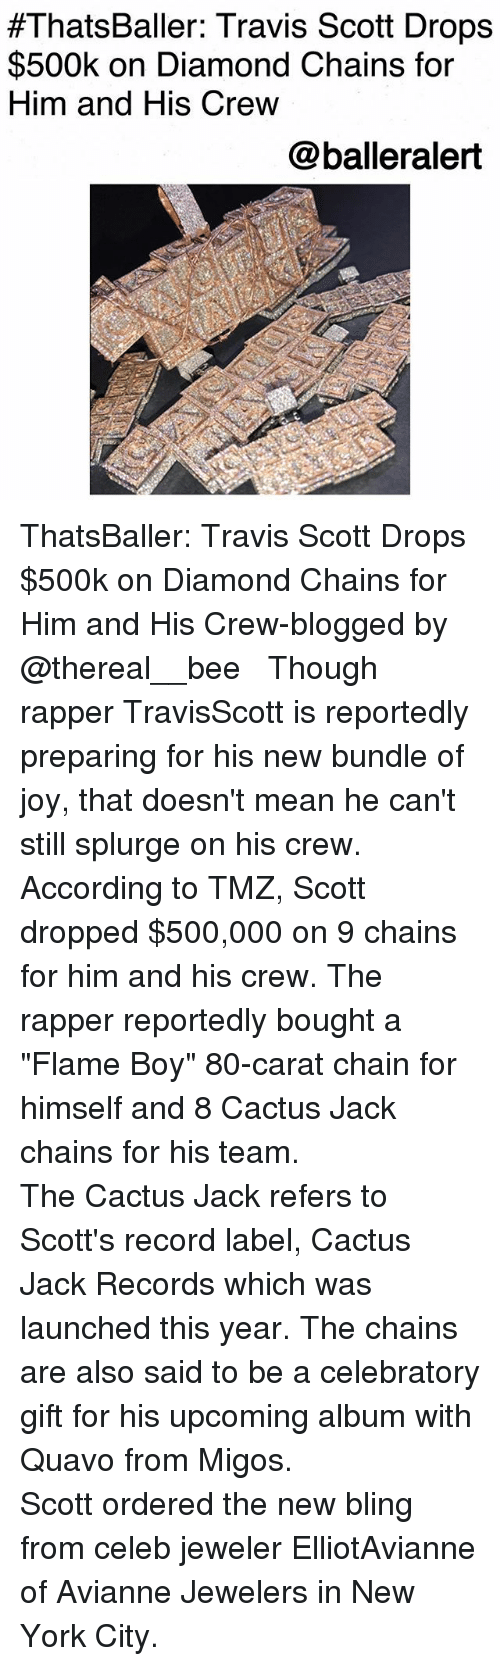 "carat:  #ThatsBaller: Travis Scott Drops  $500k on Diamond Chains for  Him and His Crew  @balleralert ThatsBaller: Travis Scott Drops $500k on Diamond Chains for Him and His Crew-blogged by @thereal__bee ⠀⠀⠀⠀⠀⠀⠀⠀⠀ ⠀⠀ Though rapper TravisScott is reportedly preparing for his new bundle of joy, that doesn't mean he can't still splurge on his crew. ⠀⠀⠀⠀⠀⠀⠀⠀⠀ ⠀⠀ According to TMZ, Scott dropped $500,000 on 9 chains for him and his crew. The rapper reportedly bought a ""Flame Boy"" 80-carat chain for himself and 8 Cactus Jack chains for his team. ⠀⠀⠀⠀⠀⠀⠀⠀⠀ ⠀⠀ The Cactus Jack refers to Scott's record label, Cactus Jack Records which was launched this year. The chains are also said to be a celebratory gift for his upcoming album with Quavo from Migos. ⠀⠀⠀⠀⠀⠀⠀⠀⠀ ⠀⠀ Scott ordered the new bling from celeb jeweler ElliotAvianne of Avianne Jewelers in New York City."